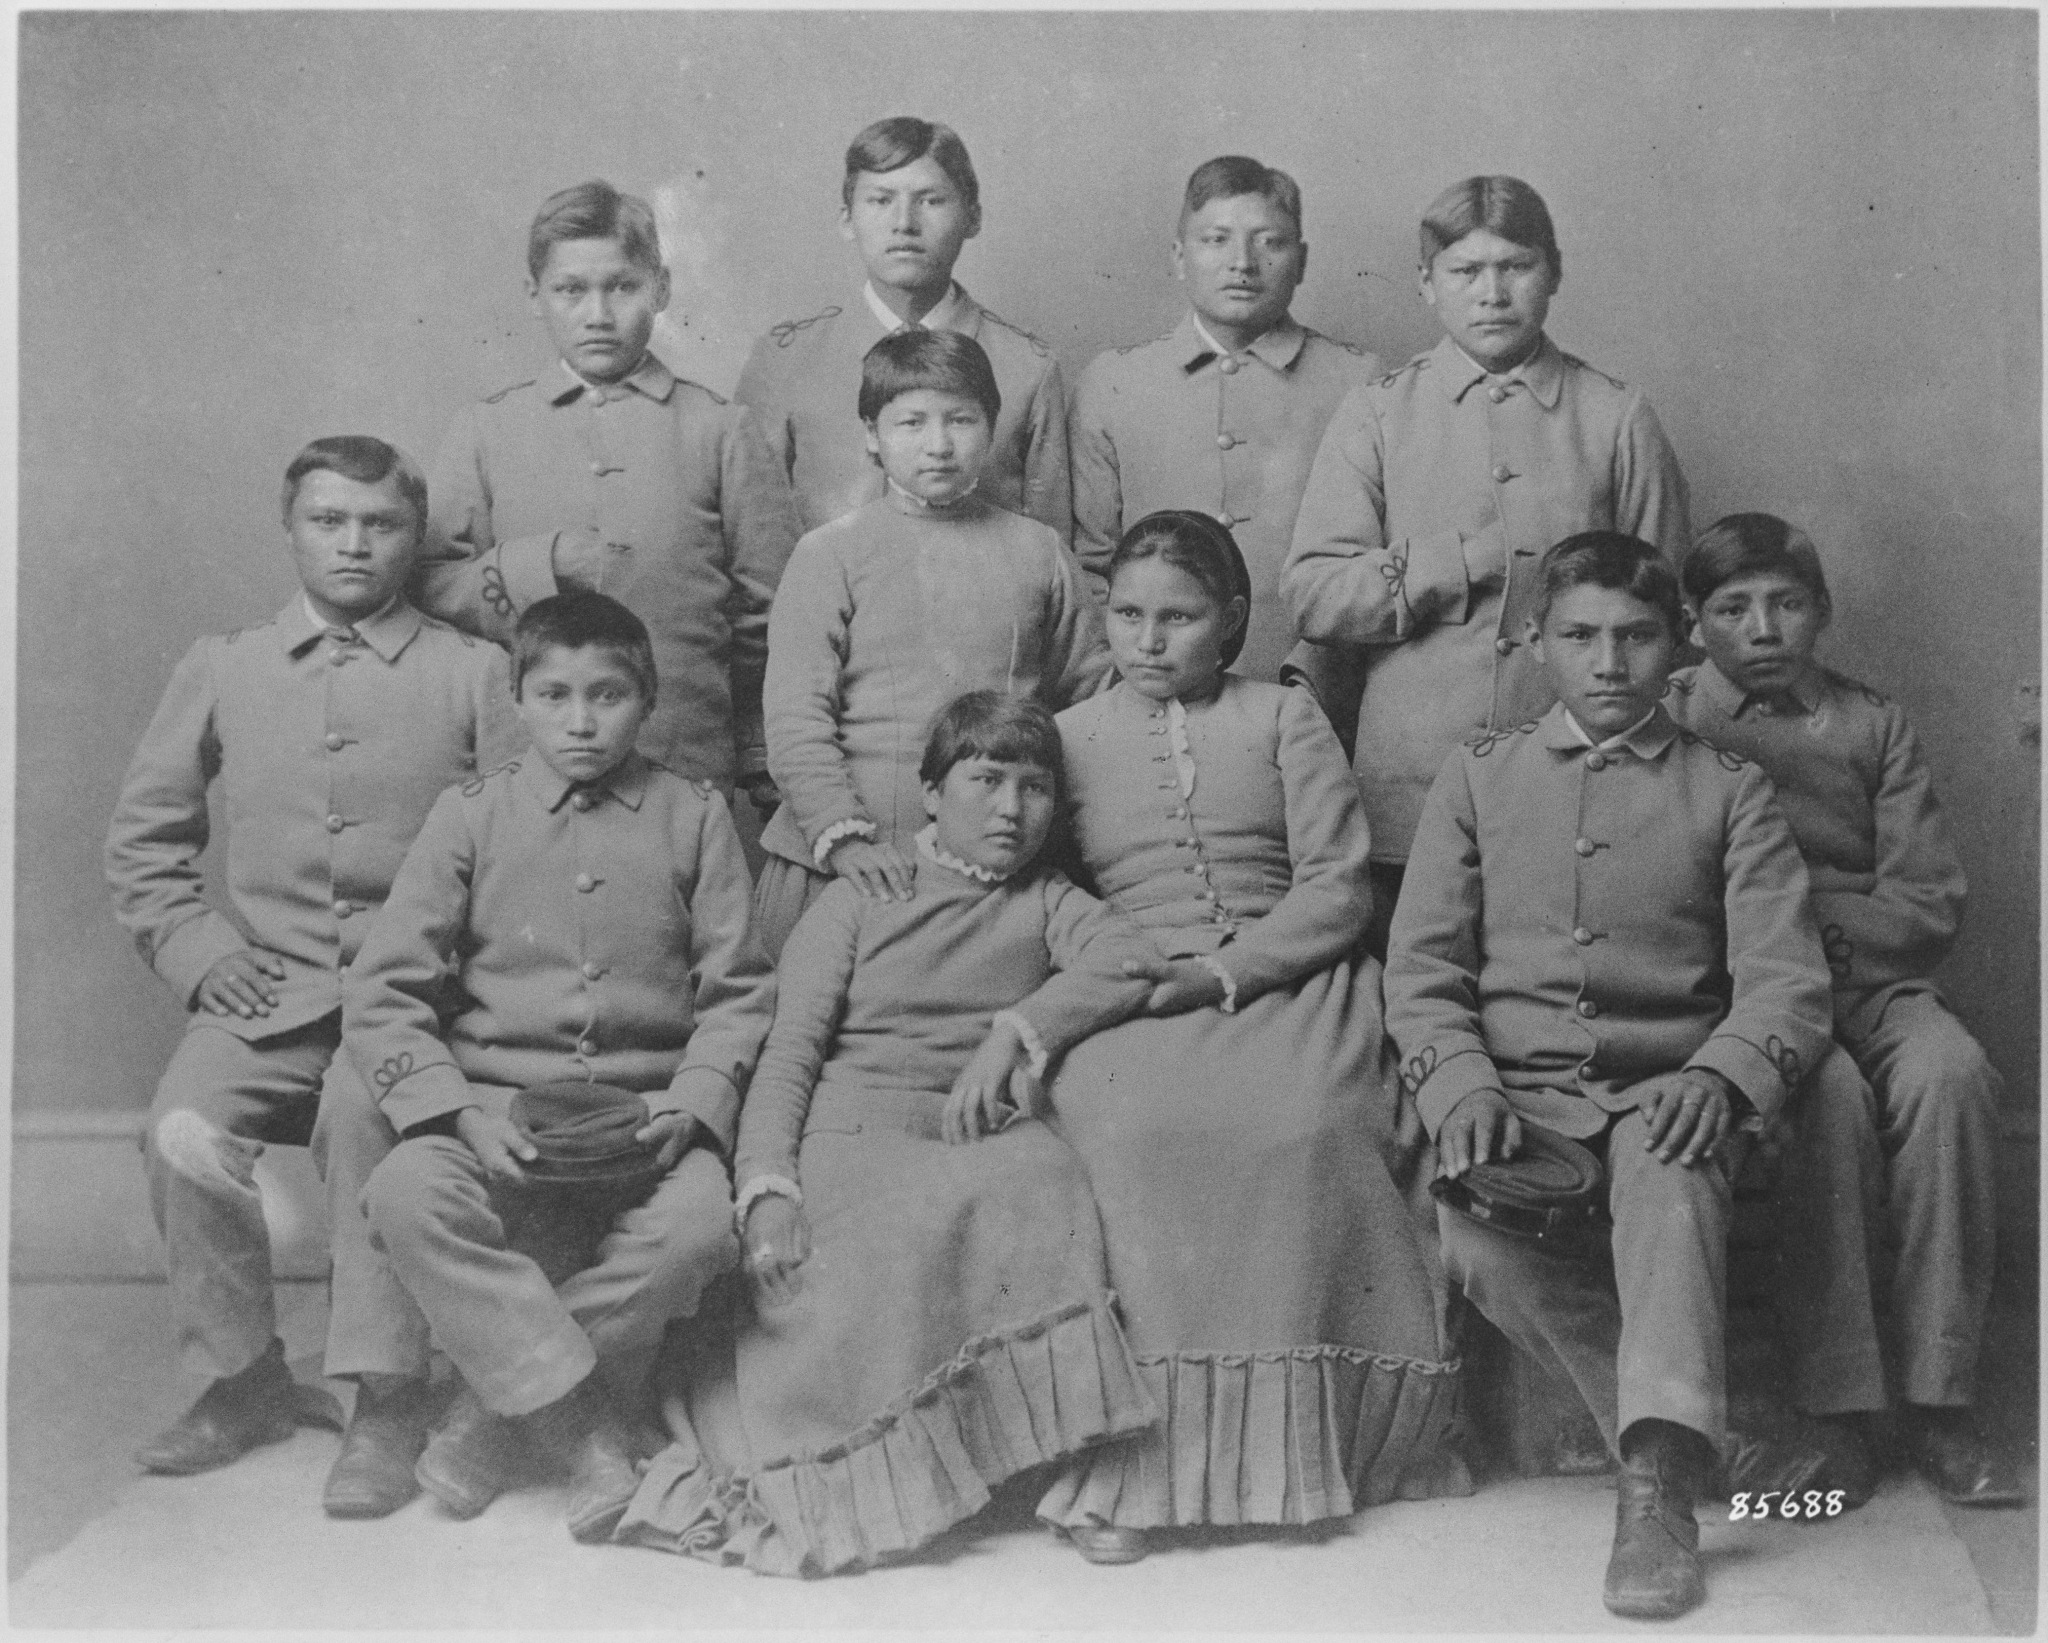 After Carlisle Indian School  Training